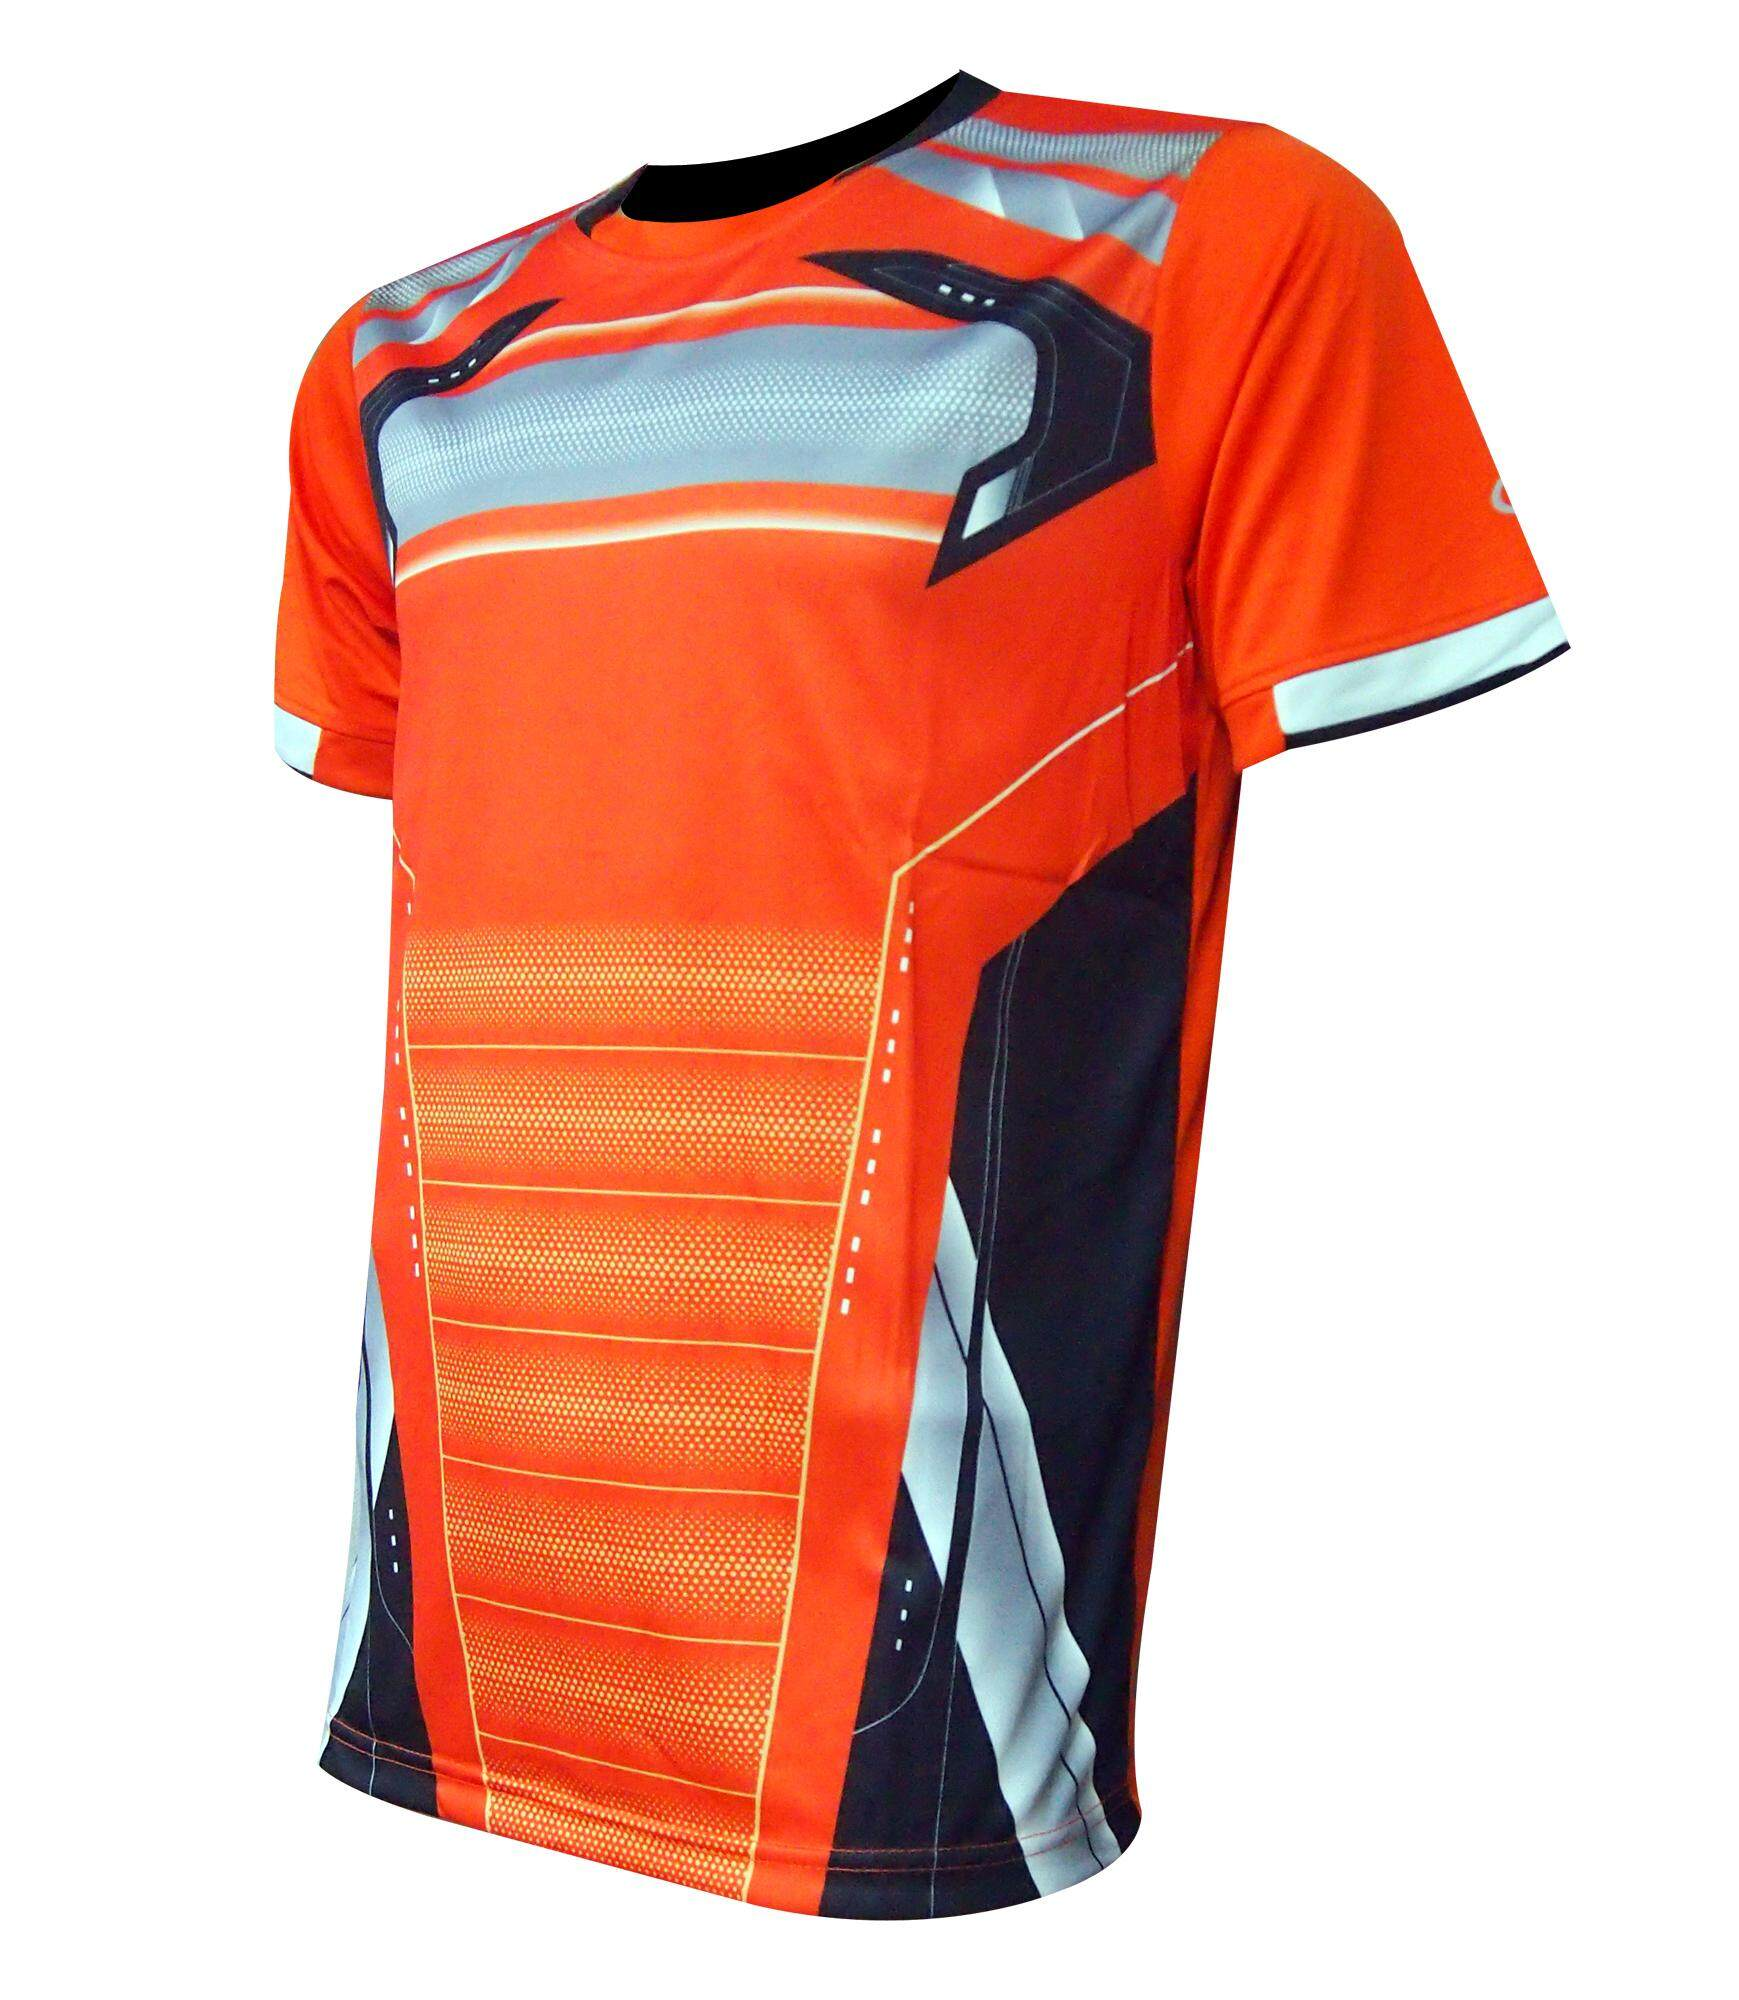 AMBROS Men's Poly Paper Transfer Jersey - Orange/Black